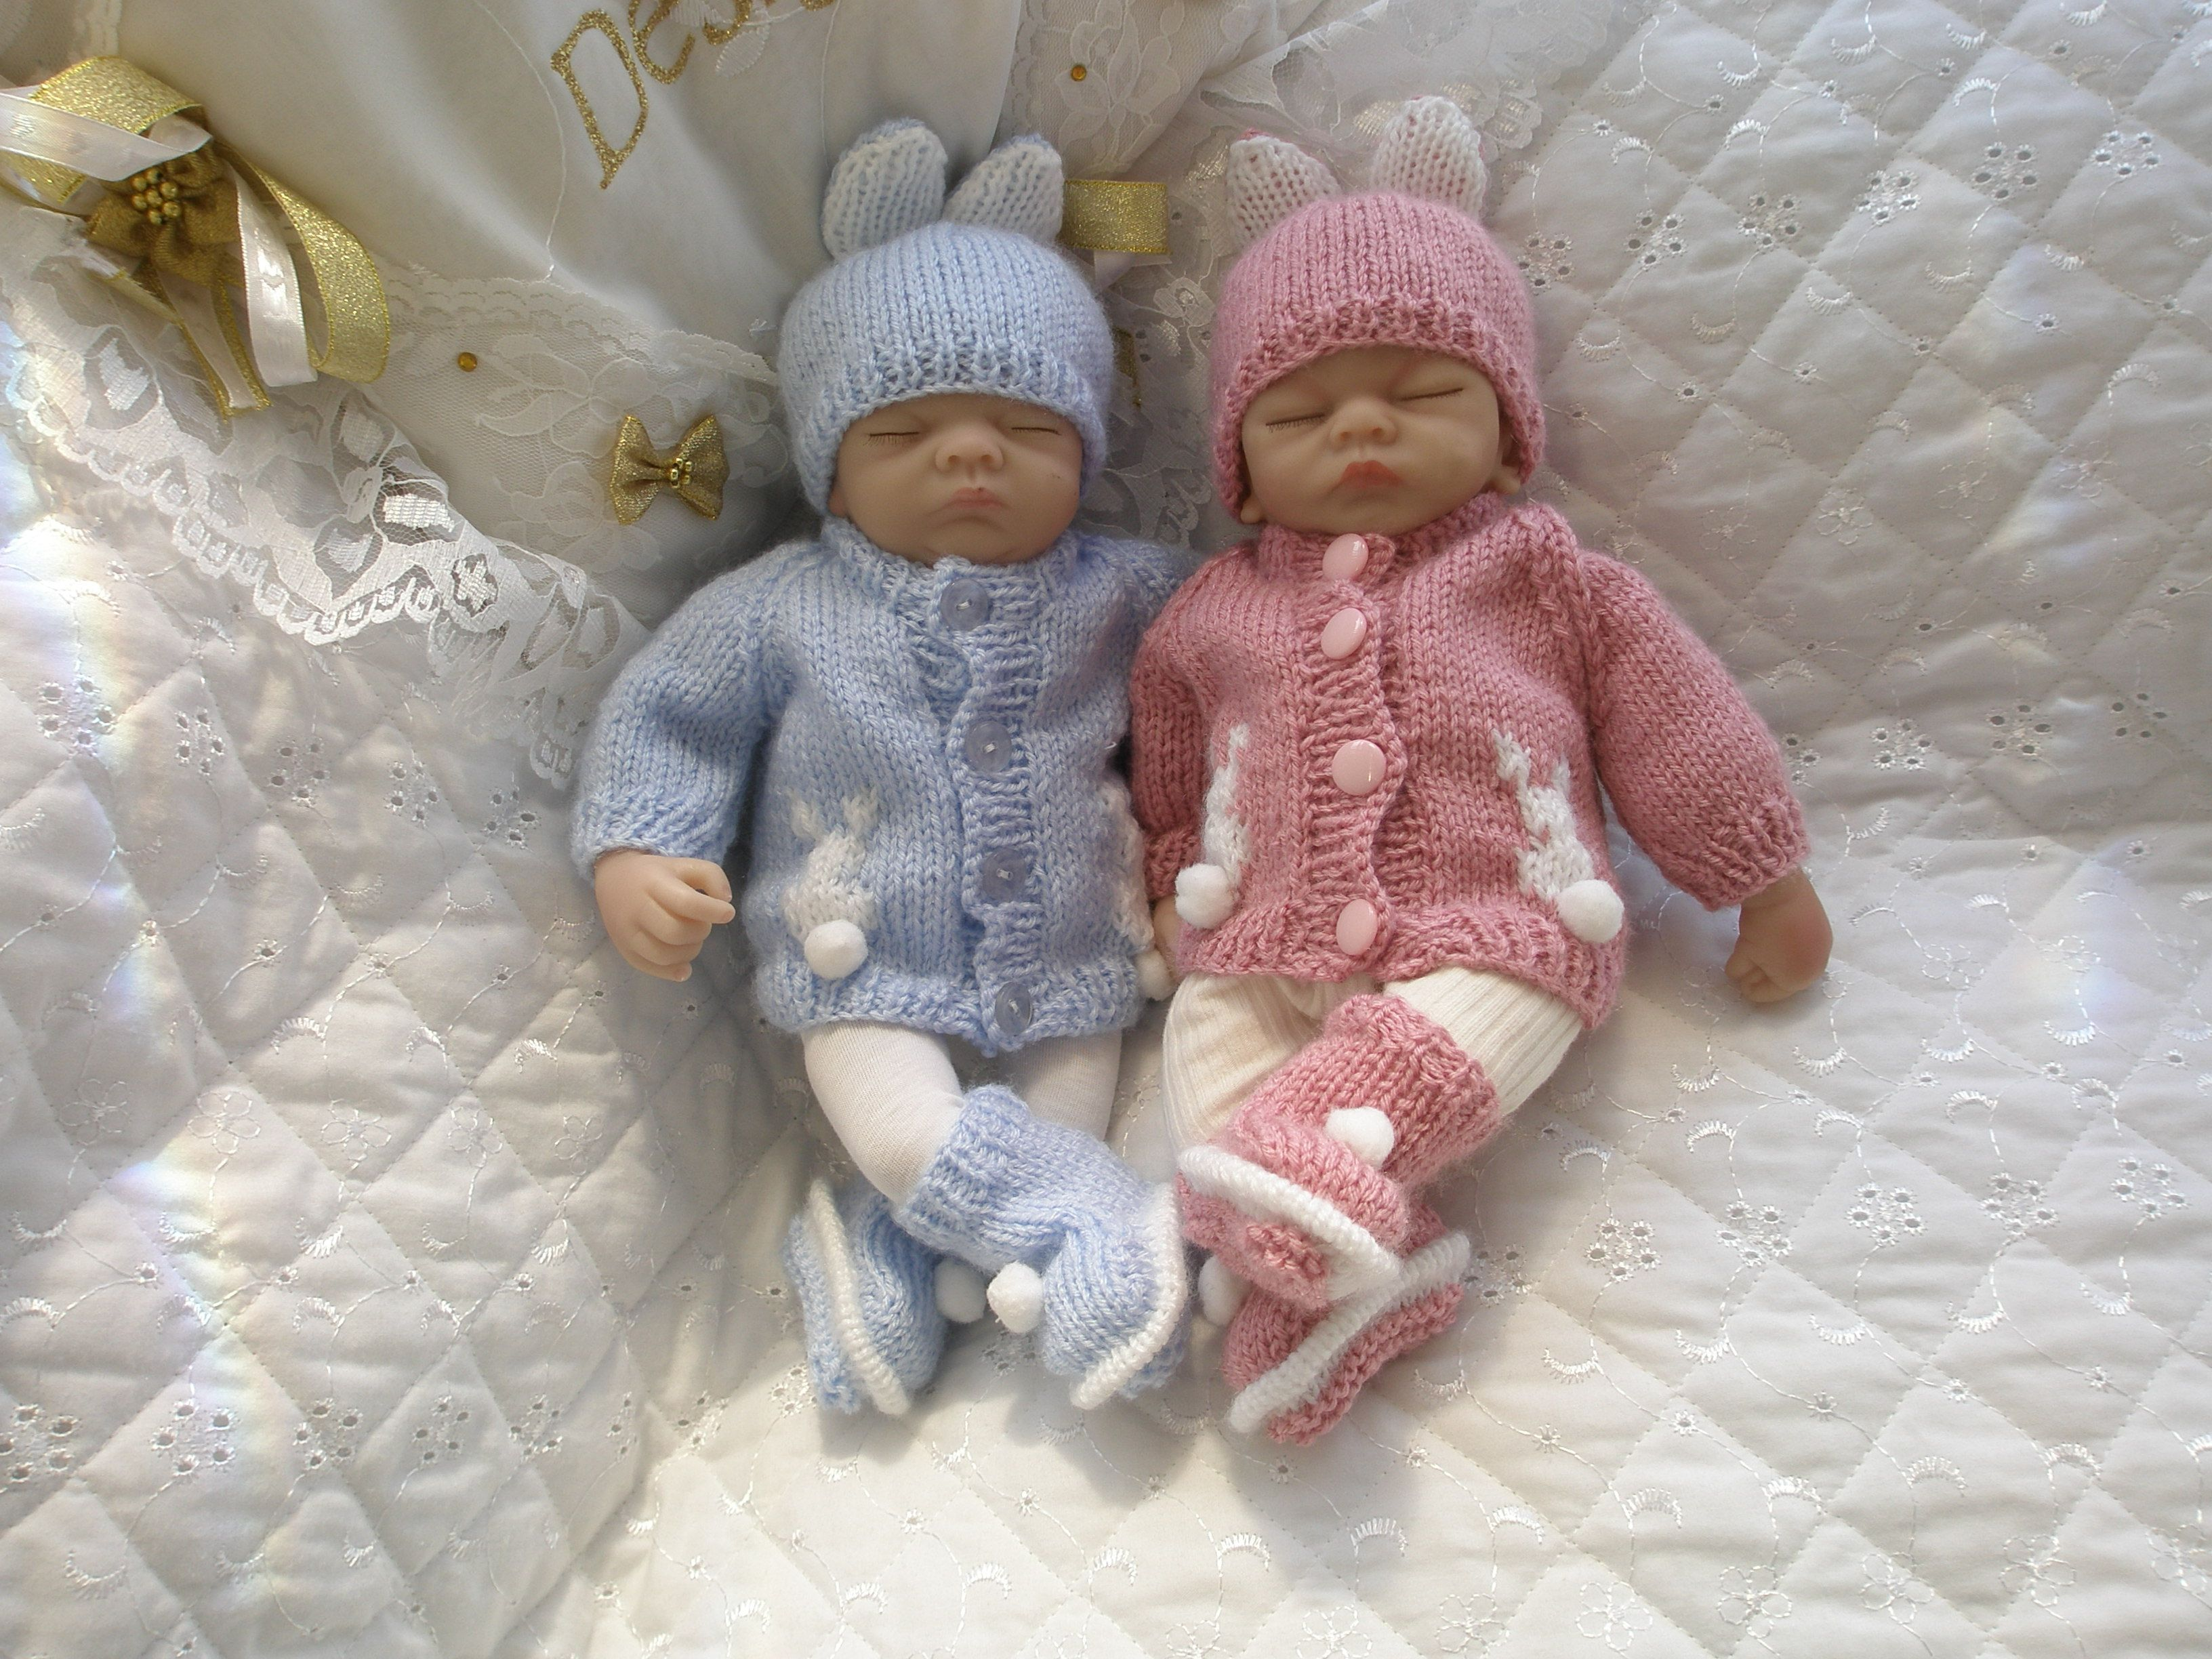 Knitting pattern with bunny motif suitable for premature baby 2 3 knitting pattern with bunny motif suitable for premature baby 2 3 lb or 10 bankloansurffo Choice Image